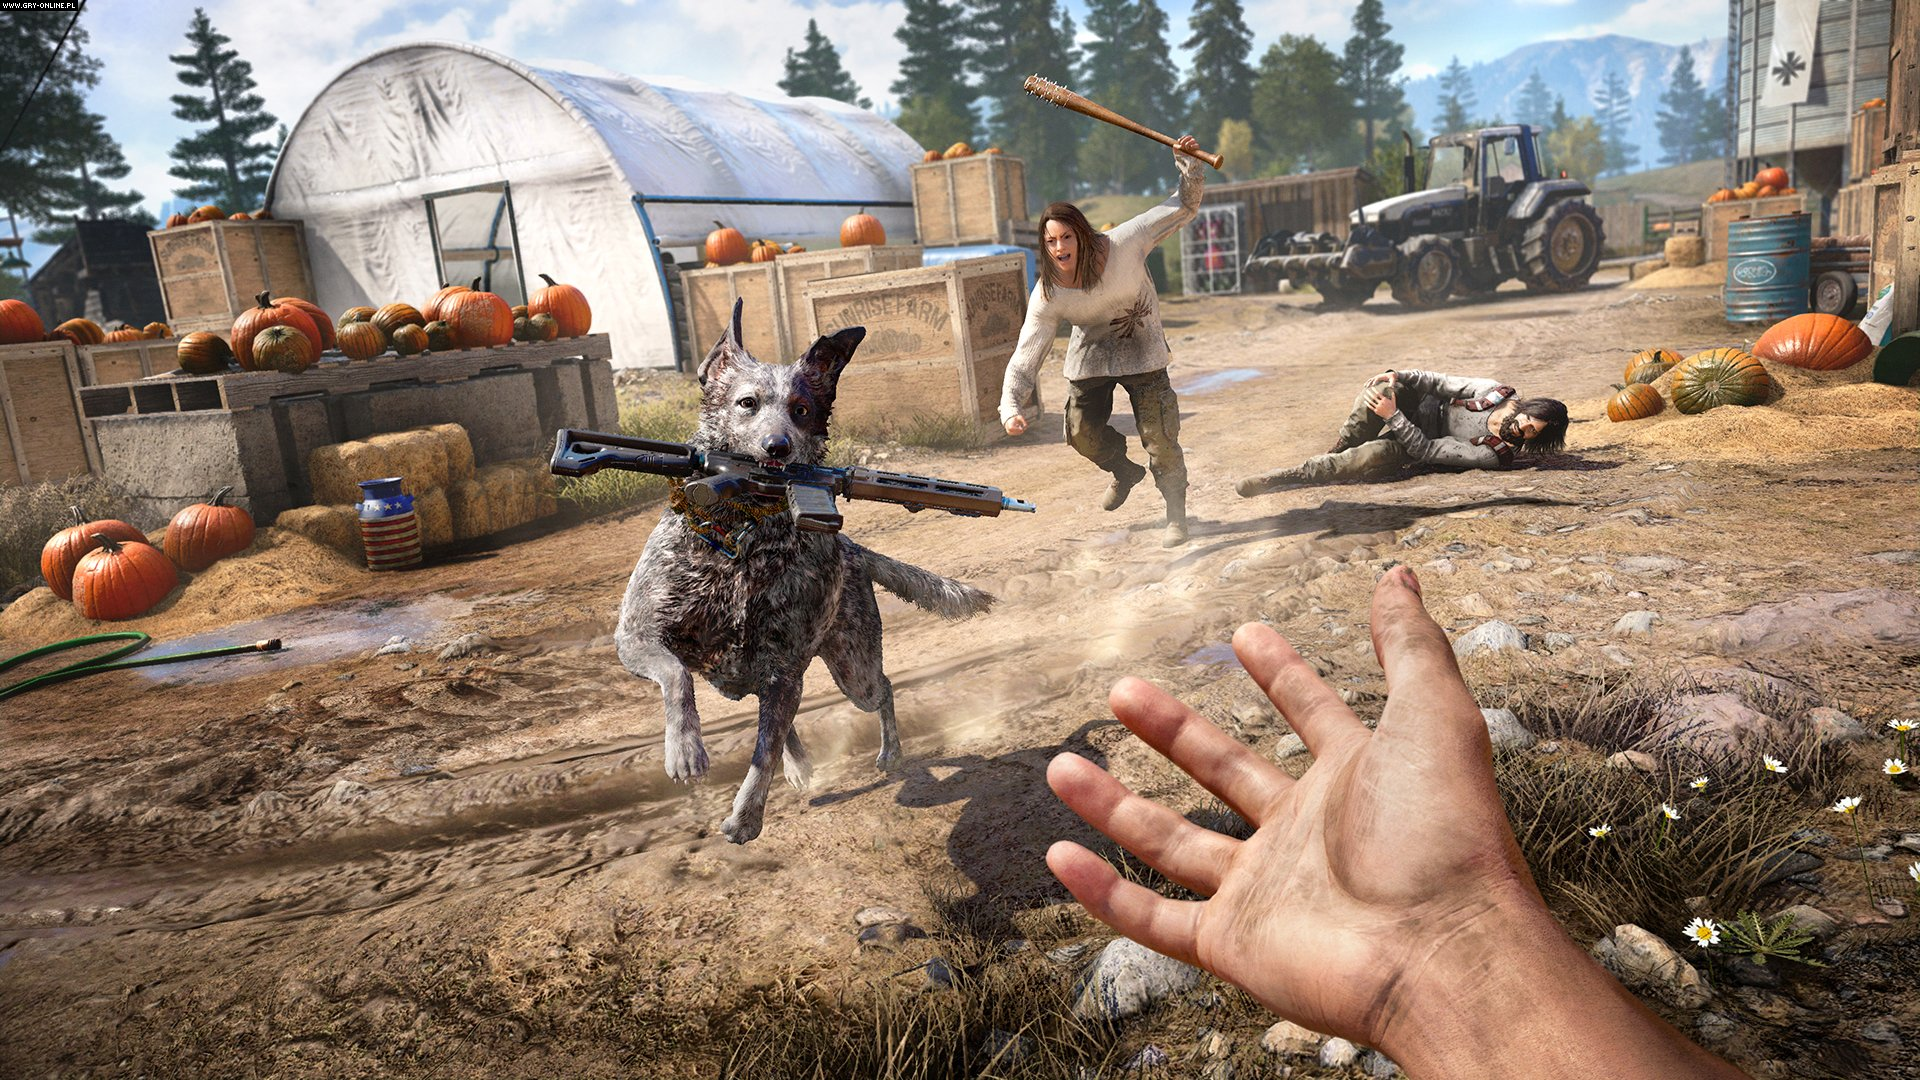 Far Cry 5 PC, PS4, XONE Gry Screen 28/38, Ubisoft